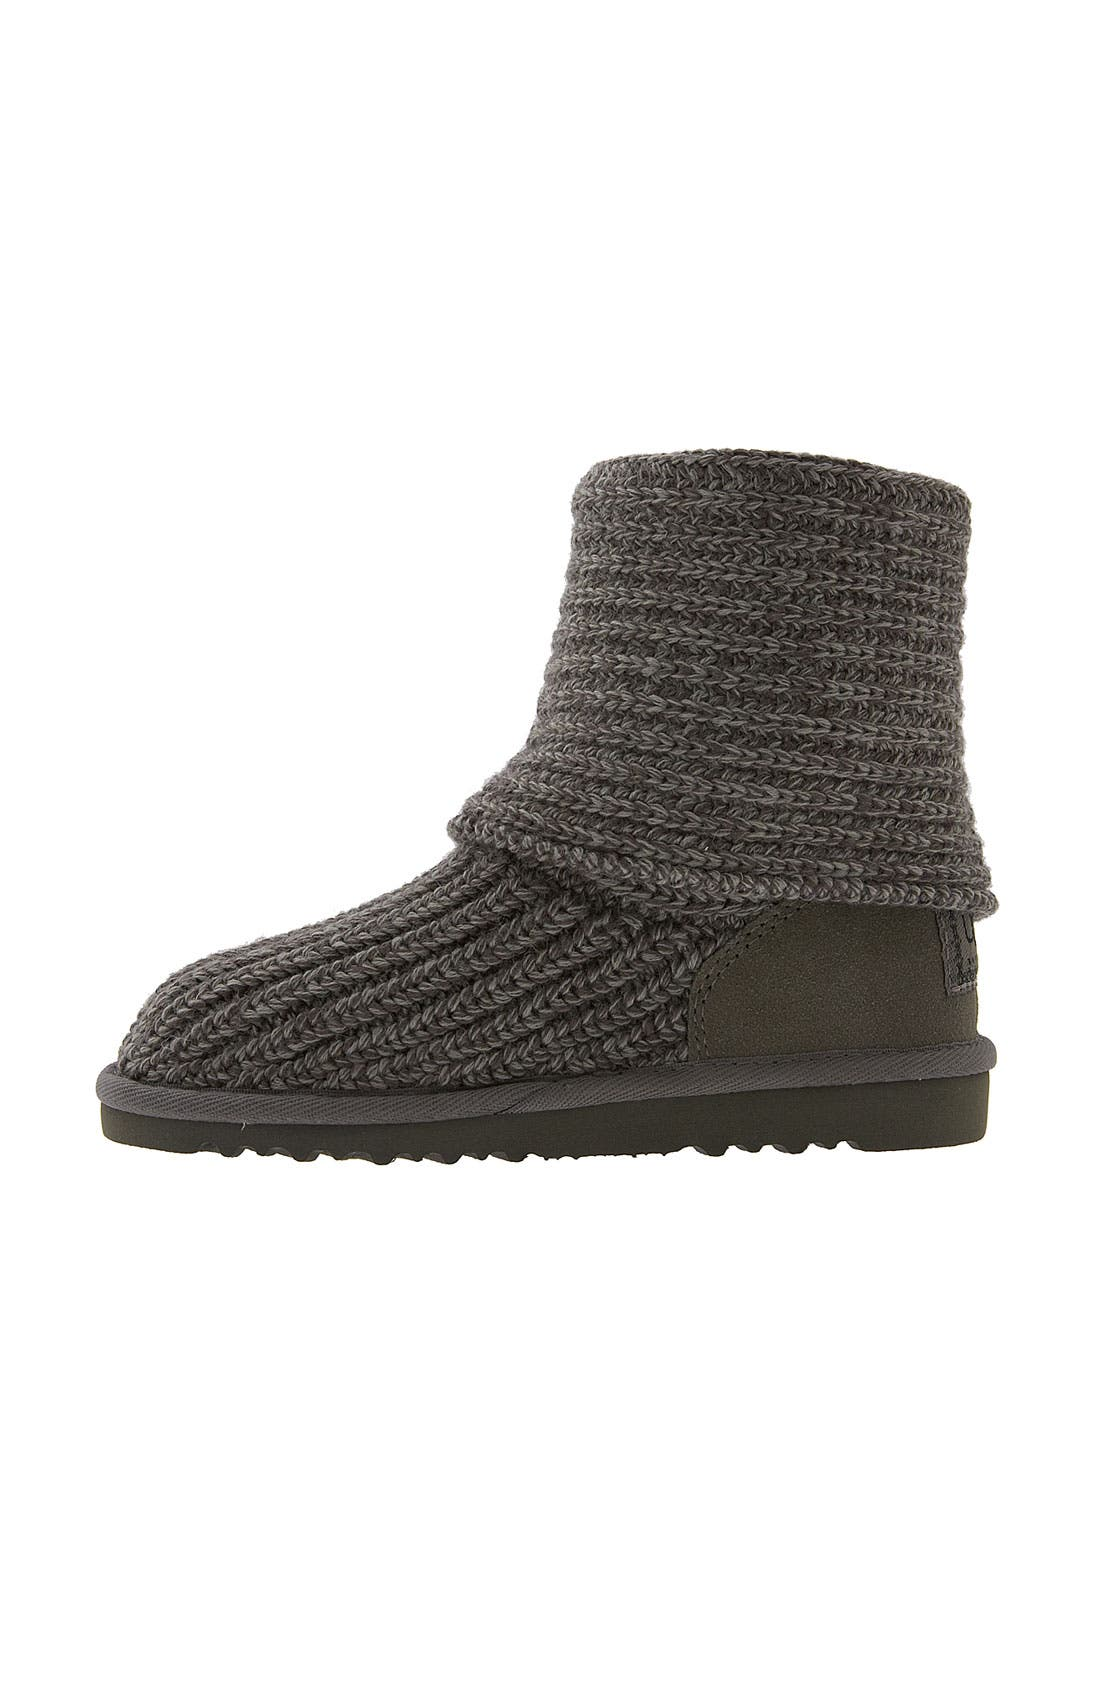 Alternate Image 3  - UGG® 'Cardy' Crochet Boot (Toddler, Little Kid & Big Kid)